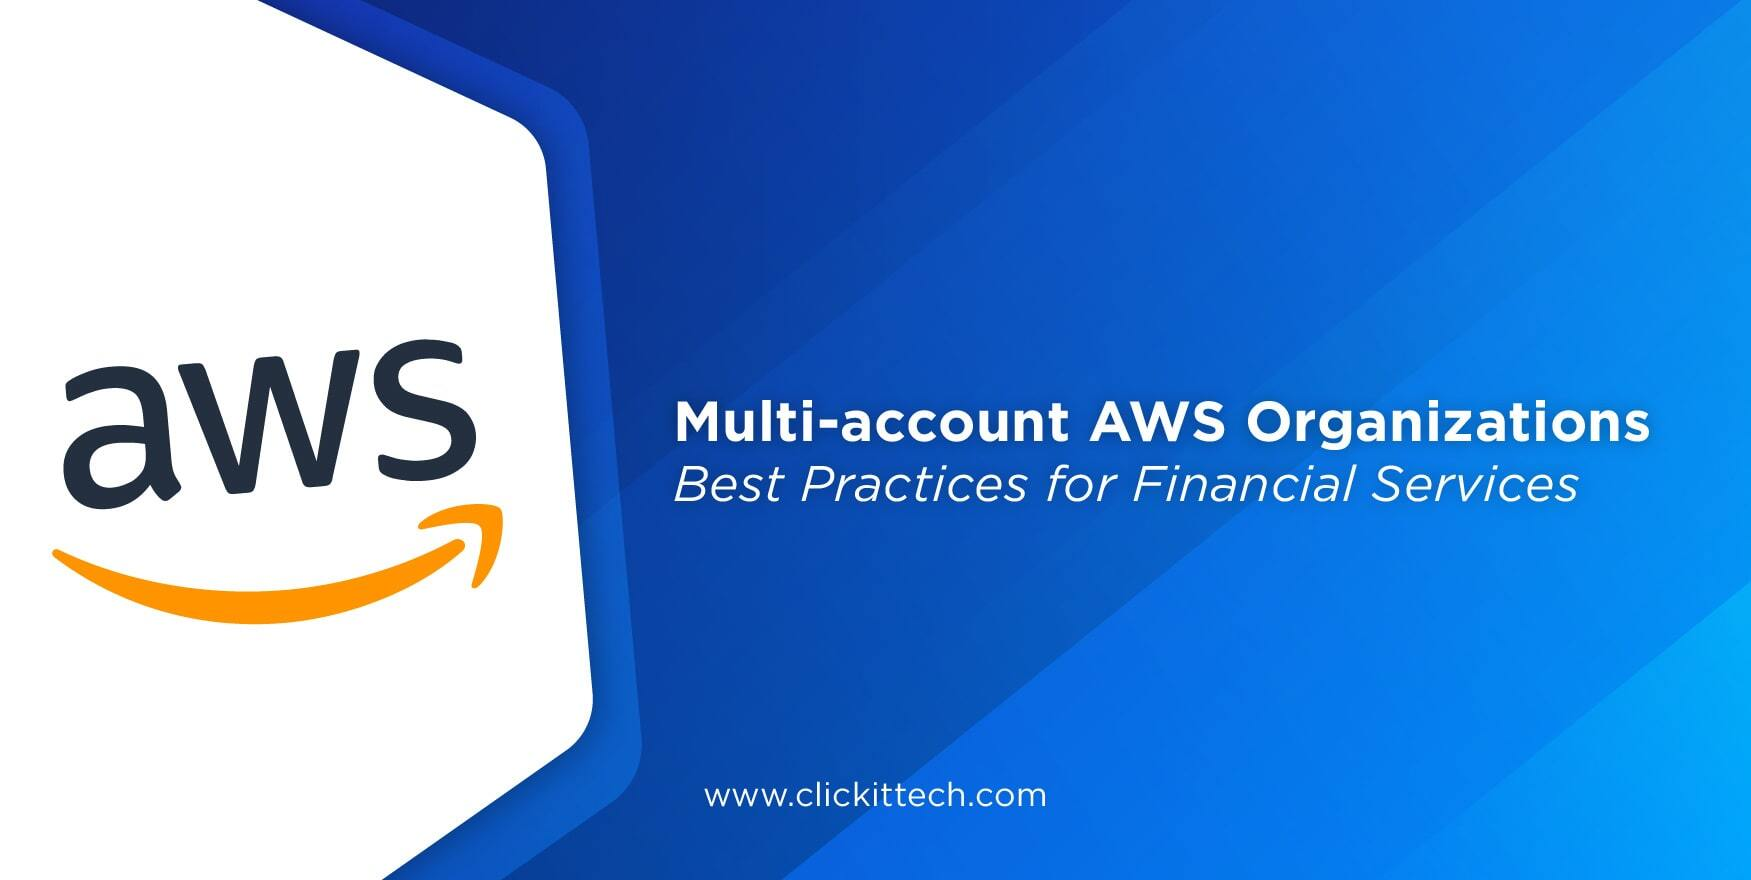 Multi-account AWS Organizations best practices for Financial Services